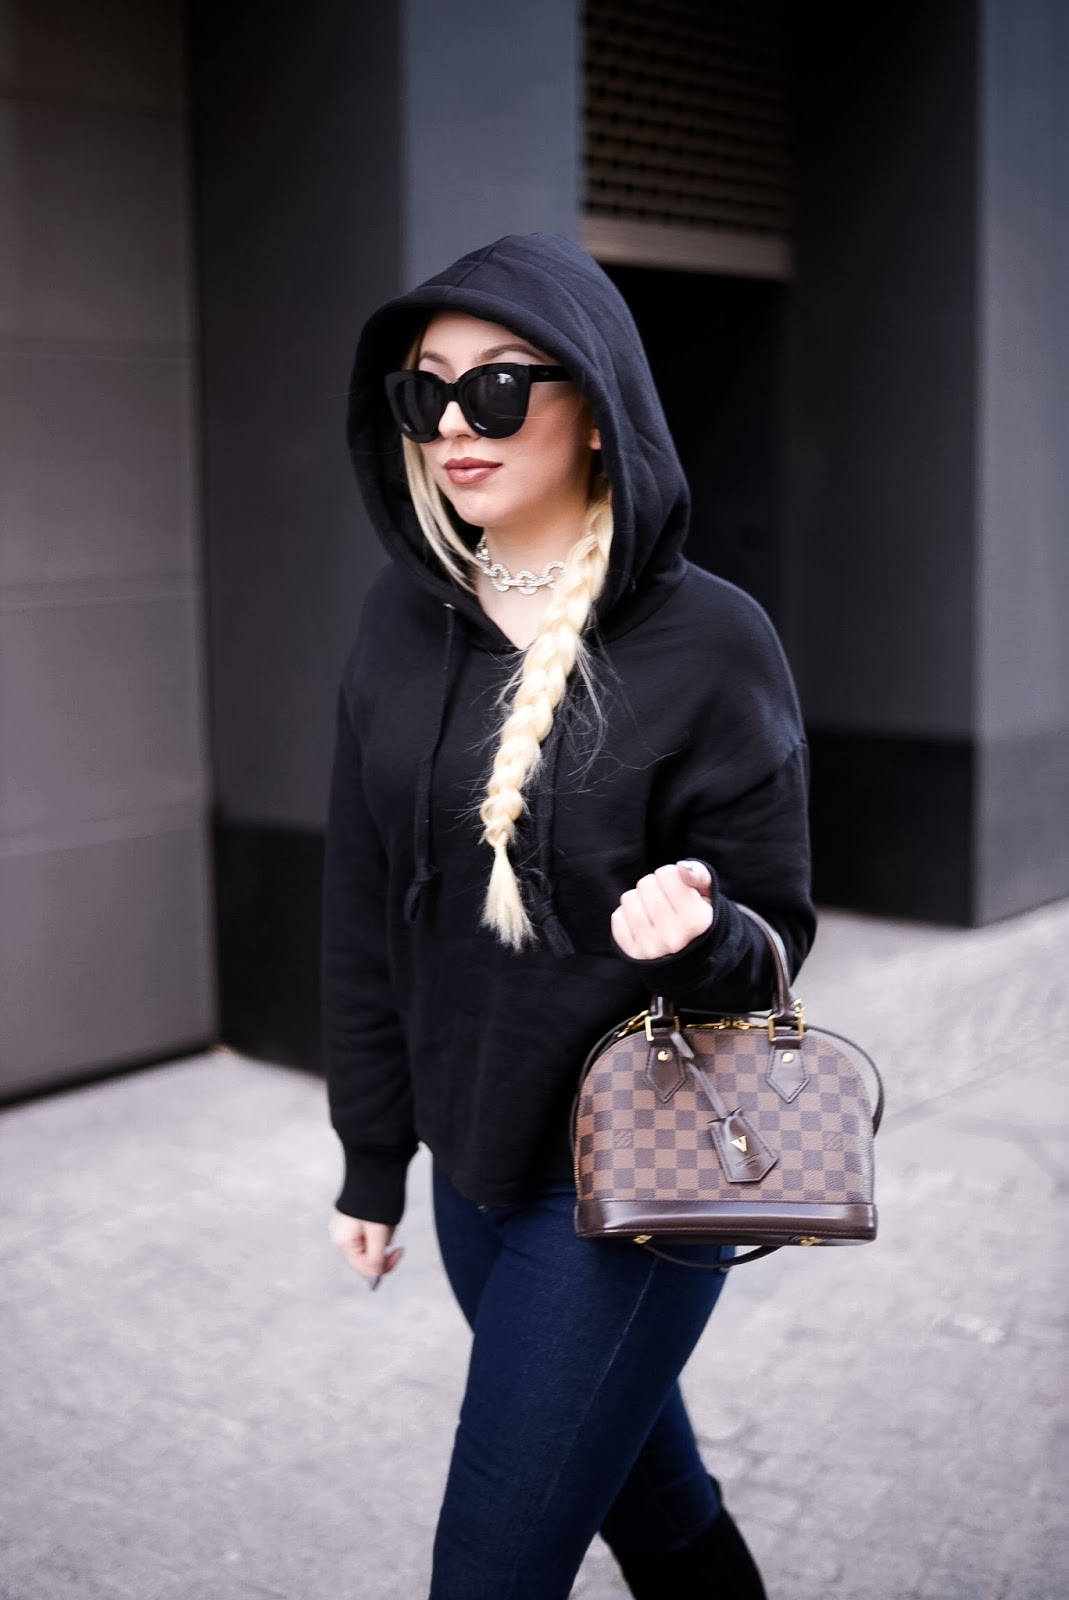 hoodie trend, hoodie streetstyle, fashionblogger streetstyle